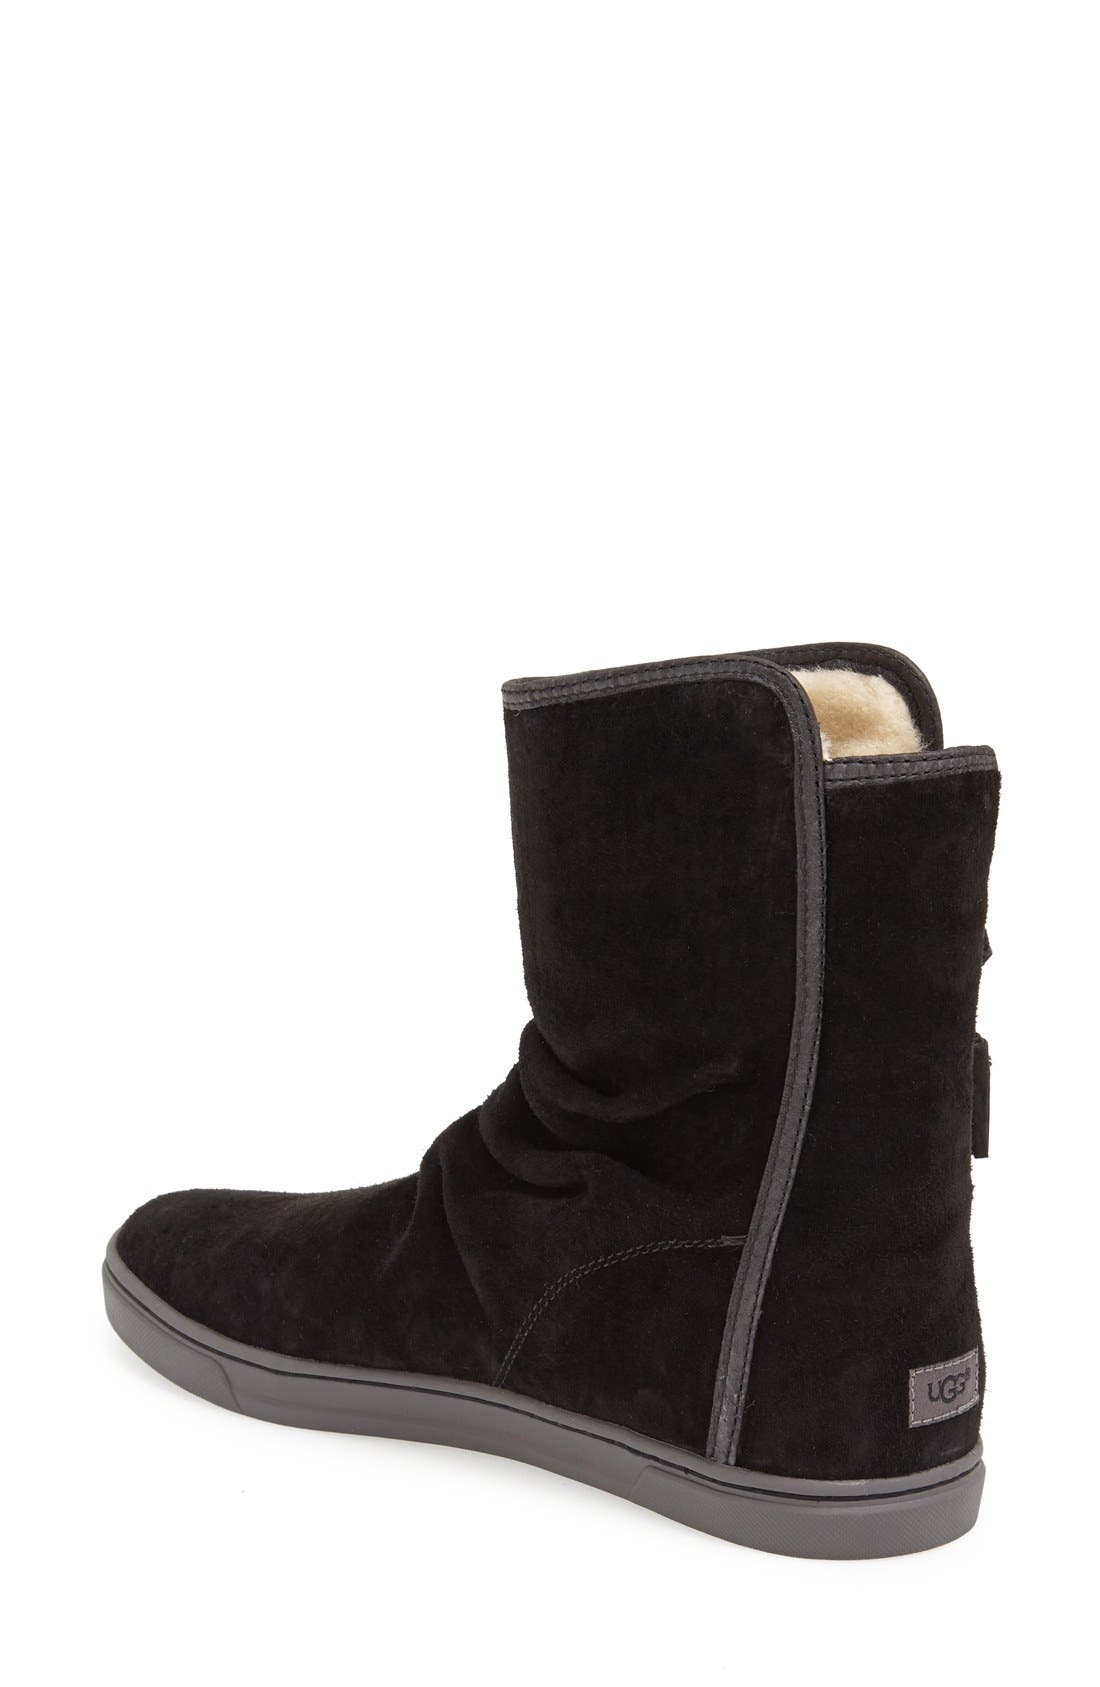 Australia 'Becky' Water Resistant Suede Boot,                             Alternate thumbnail 3, color,                             001